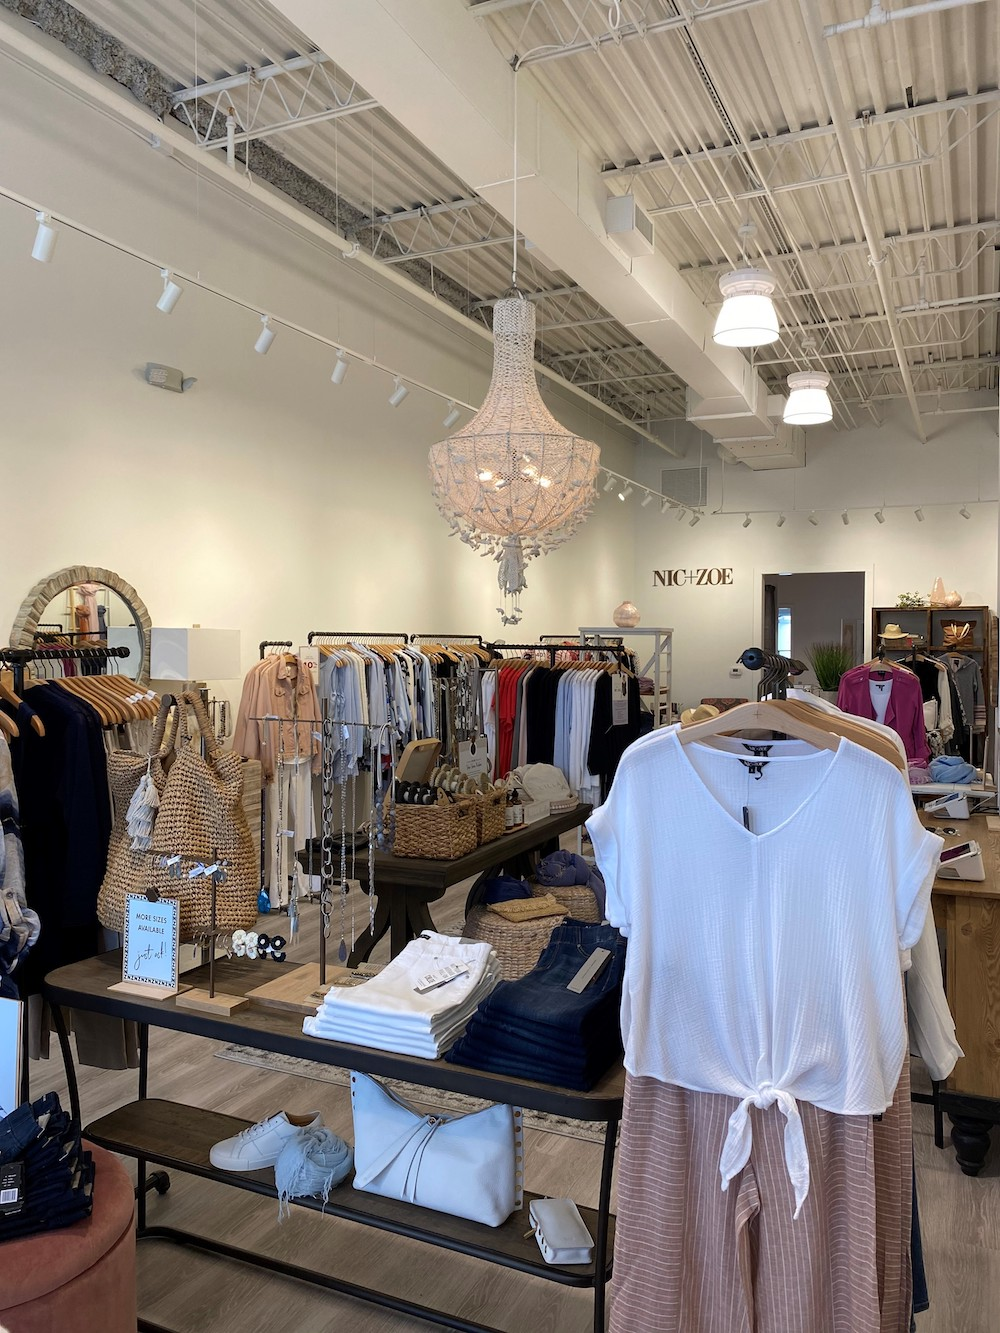 Women's apparel brand Nic+Zoe opened three new stores with new services like curbside pickup and virtual shopping and styling appointments.